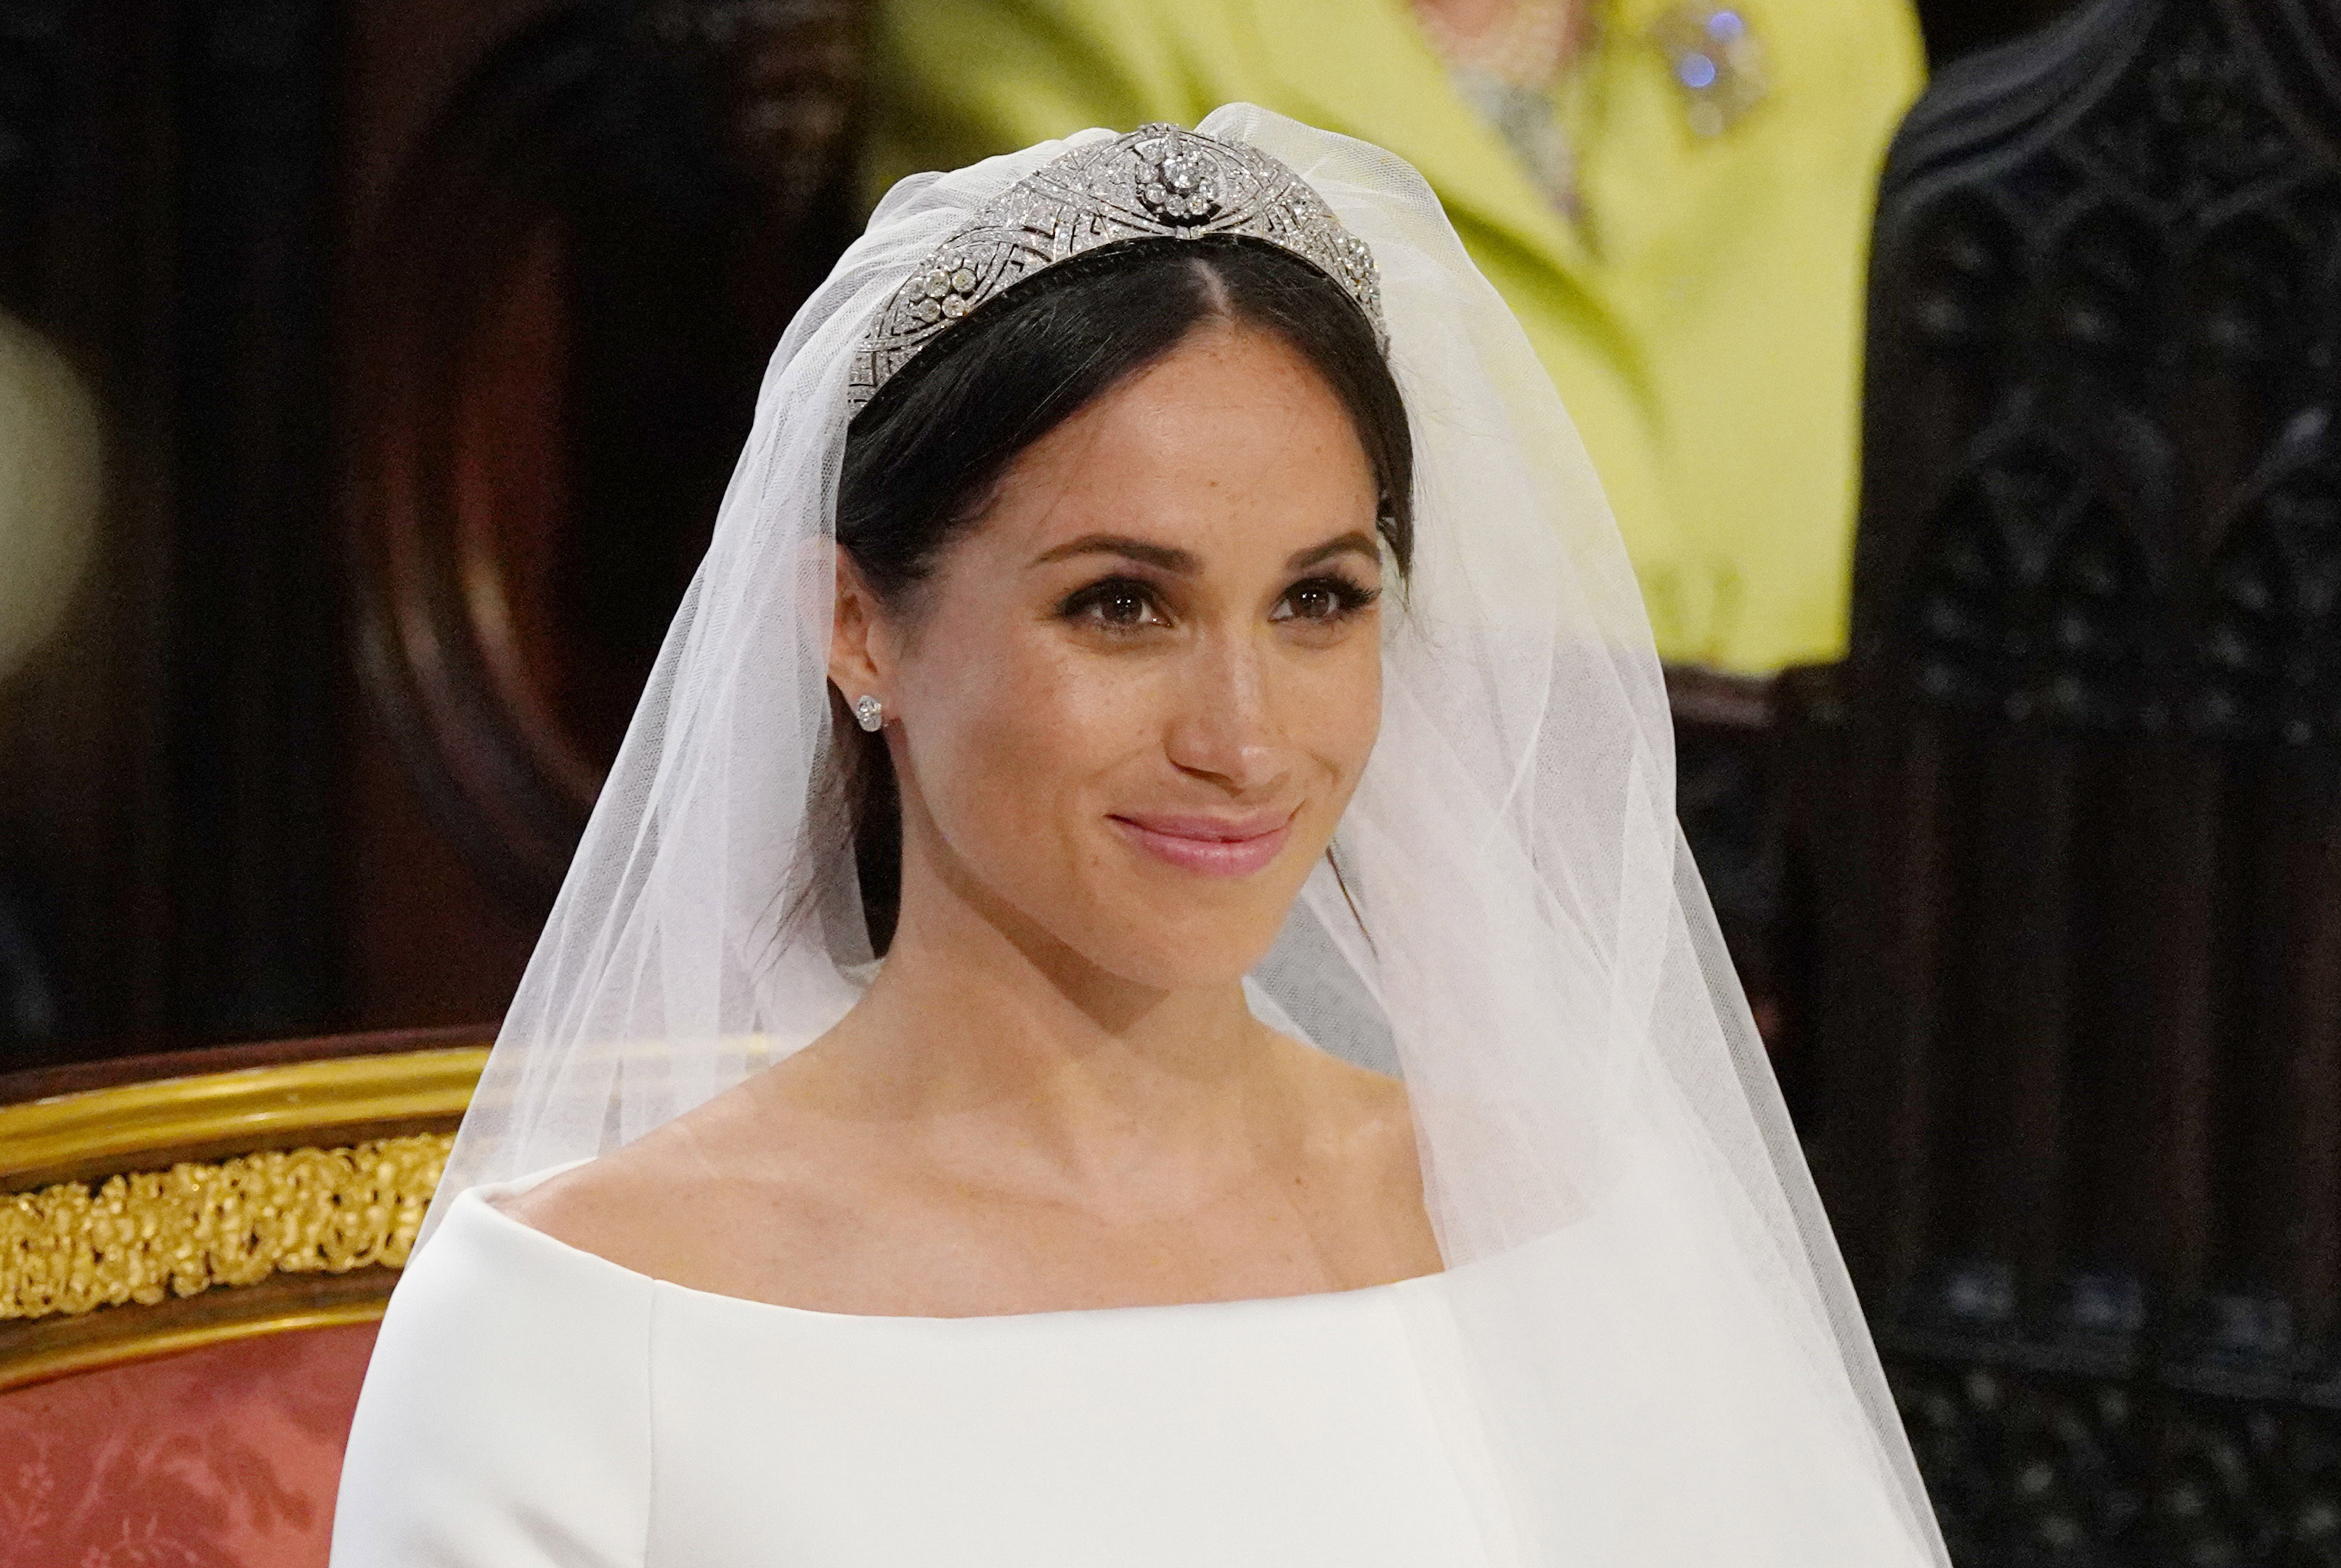 Meghan Markle stands at the altar during her wedding in St George's Chapel at Windsor Castle on May 19, 2018, in Windsor, England. (Getty Images)